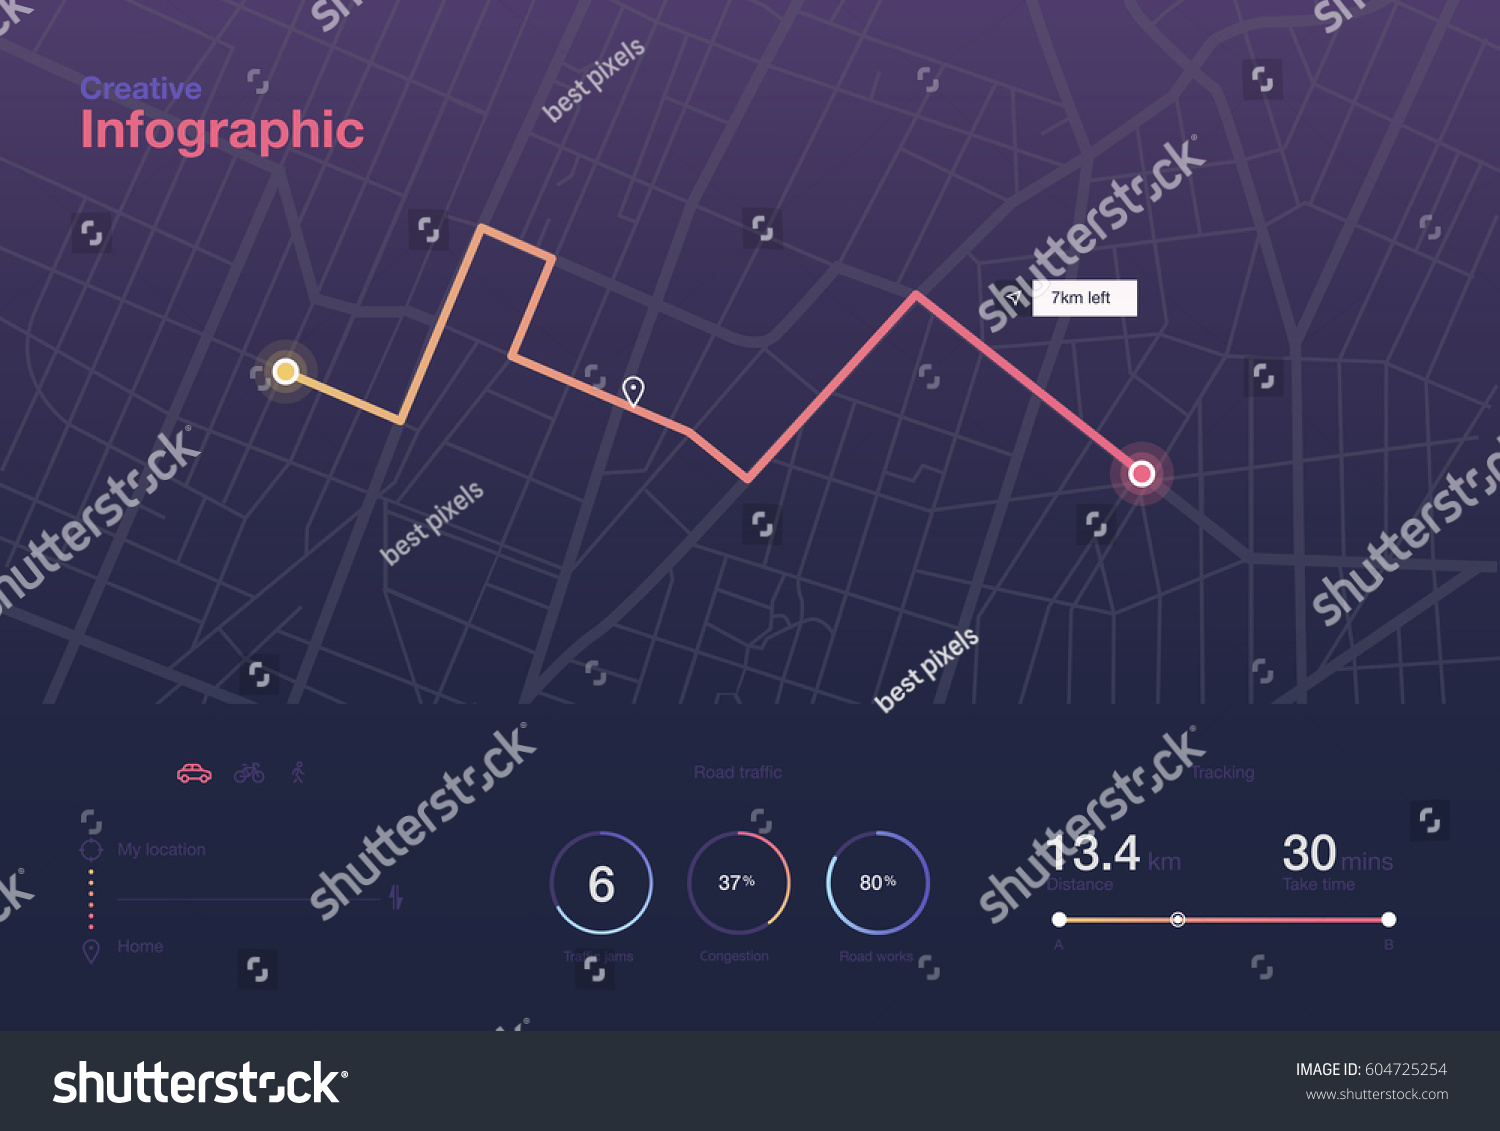 Dashboard theme creative infographic of city map navigation #604725254